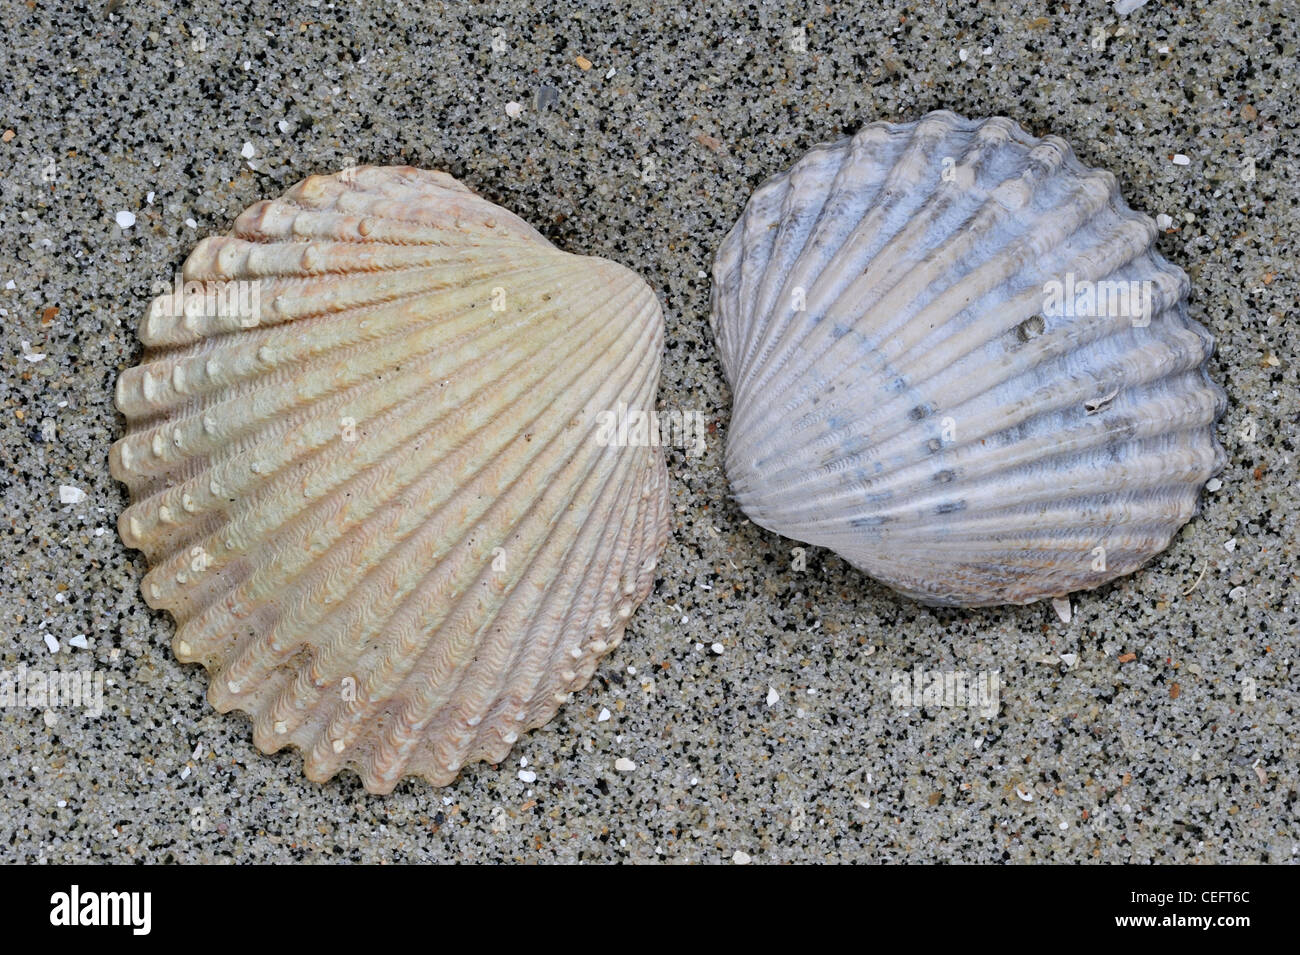 Poorly ribbed cockle (Acanthocardia paucicostata) shell, Normandy, France - Stock Image